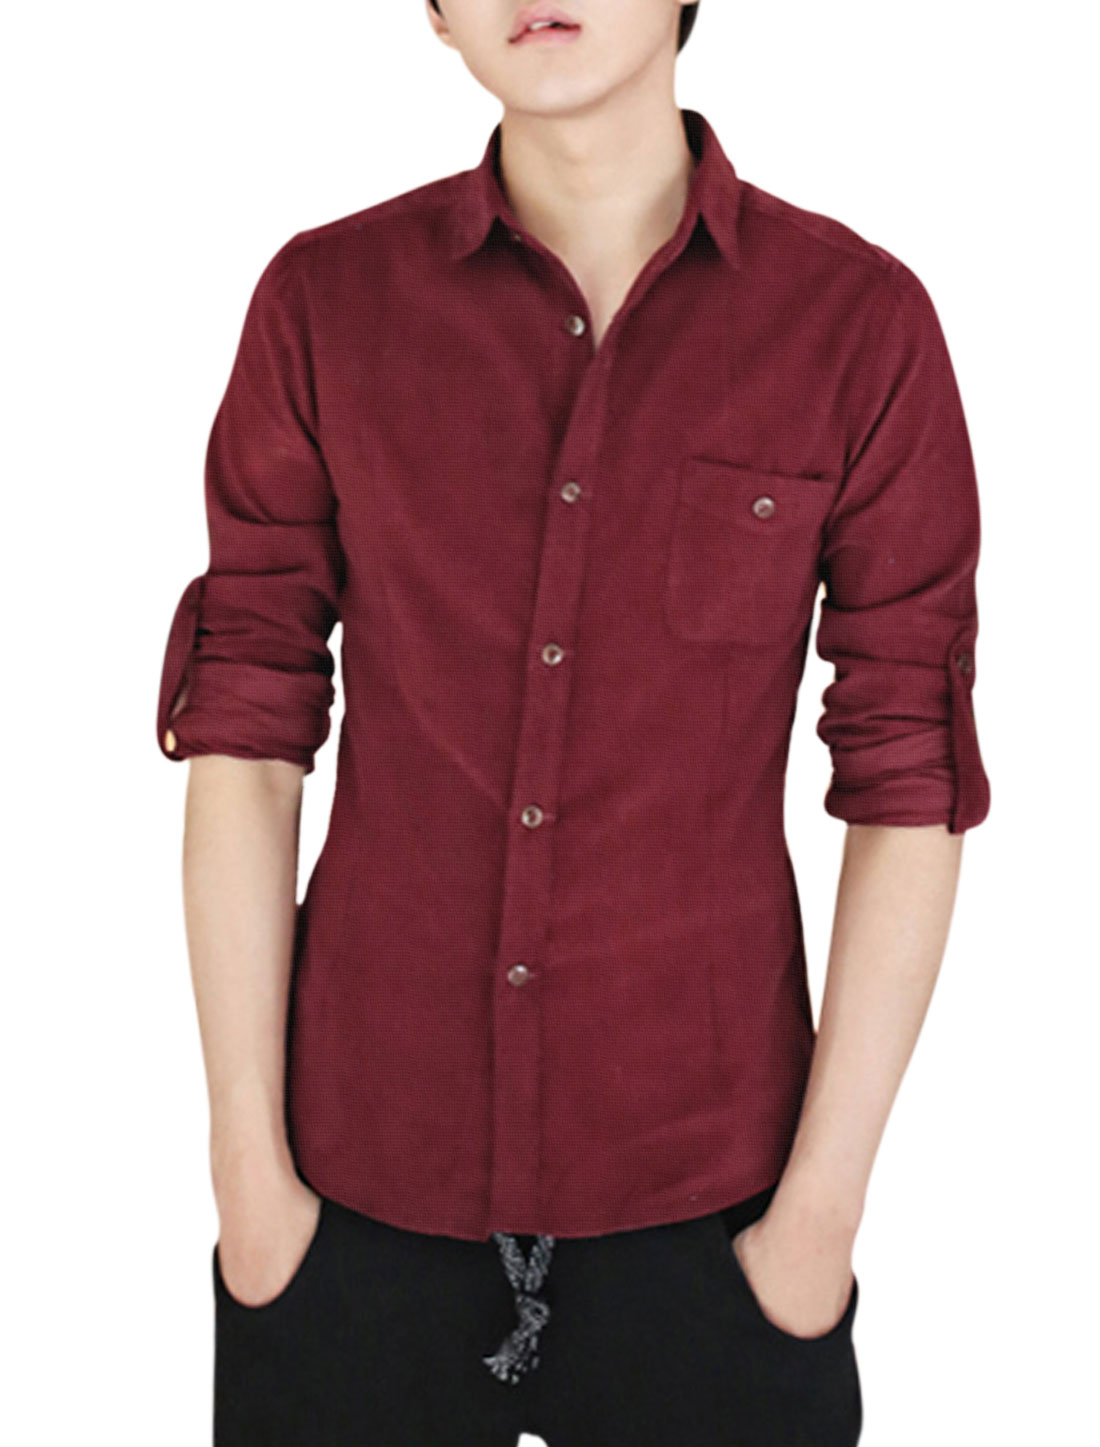 Man Stylish Slim Cut Full Sleeve Point Collar Burgundy Corduroy Shirt S